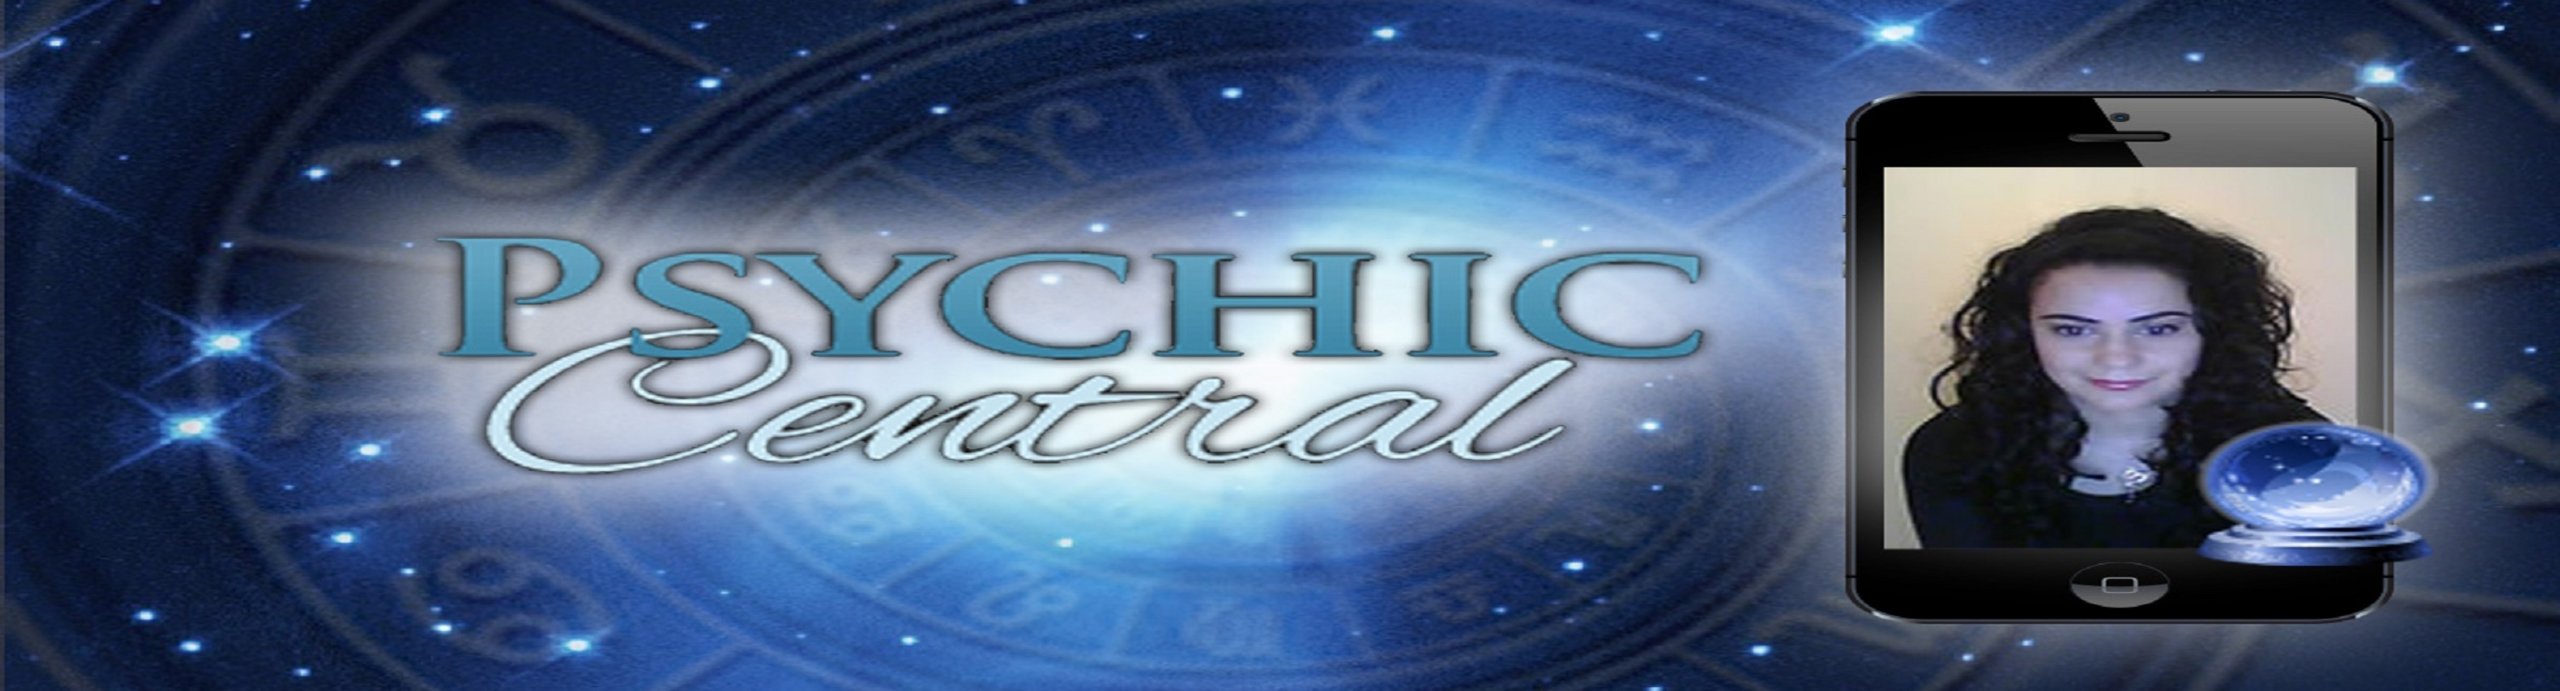 Psychic Central (@psychiccentral2) Cover Image